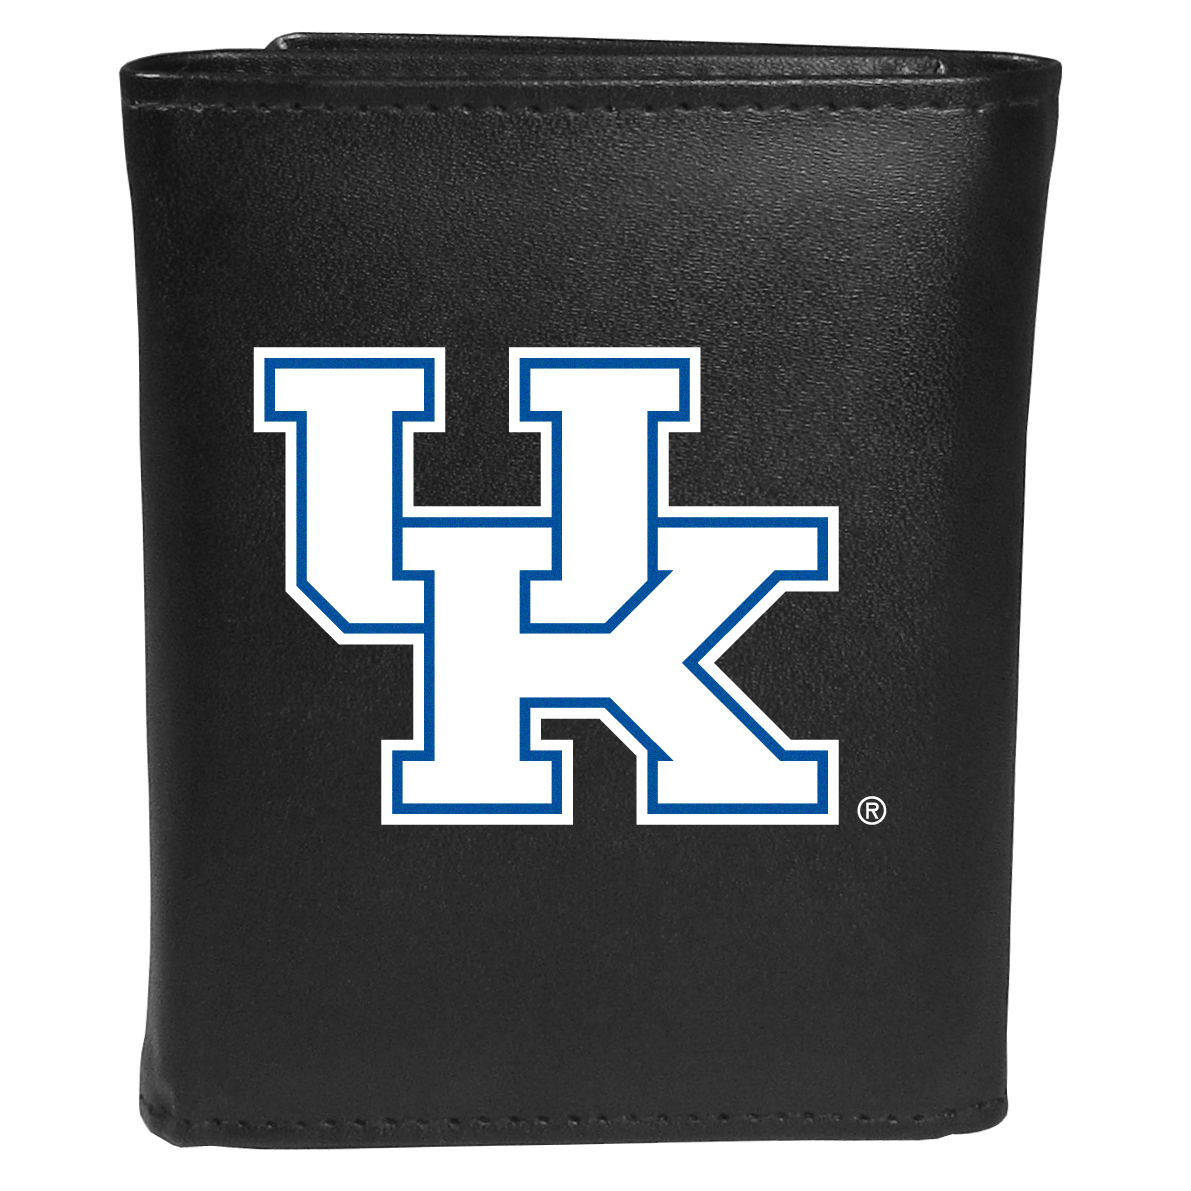 Kentucky Wildcats Tri-fold Wallet Large Logo - Sports fans do not have to sacrifice style with this classic tri-fold wallet that sports theKentucky Wildcats?extra large logo. This men's fashion accessory has a leather grain look and expert craftmanship for a quality wallet at a great price. The wallet features inner credit card slots, windowed ID slot and a large billfold pocket. The front of the wallet features an extra large printed team logo.